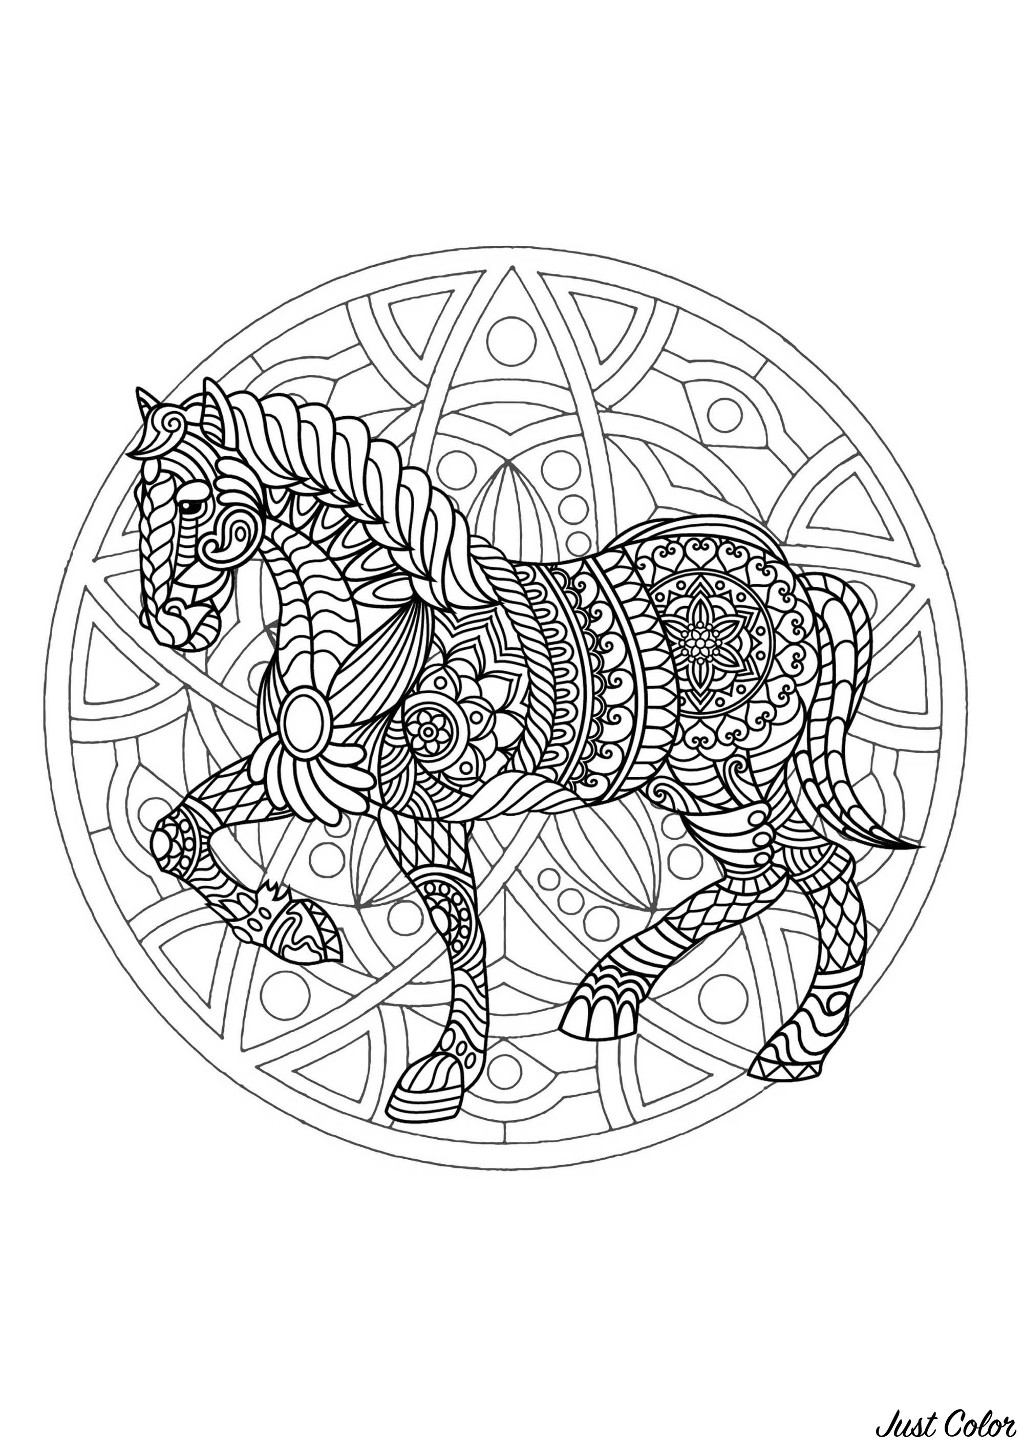 A beautiful Mandala coloring page with a beautiful horse, of great quality and originality. It's up to you to choose the most appropriate colors. You must clear your mind and allow yourself to forget all your worries and responsibilities.